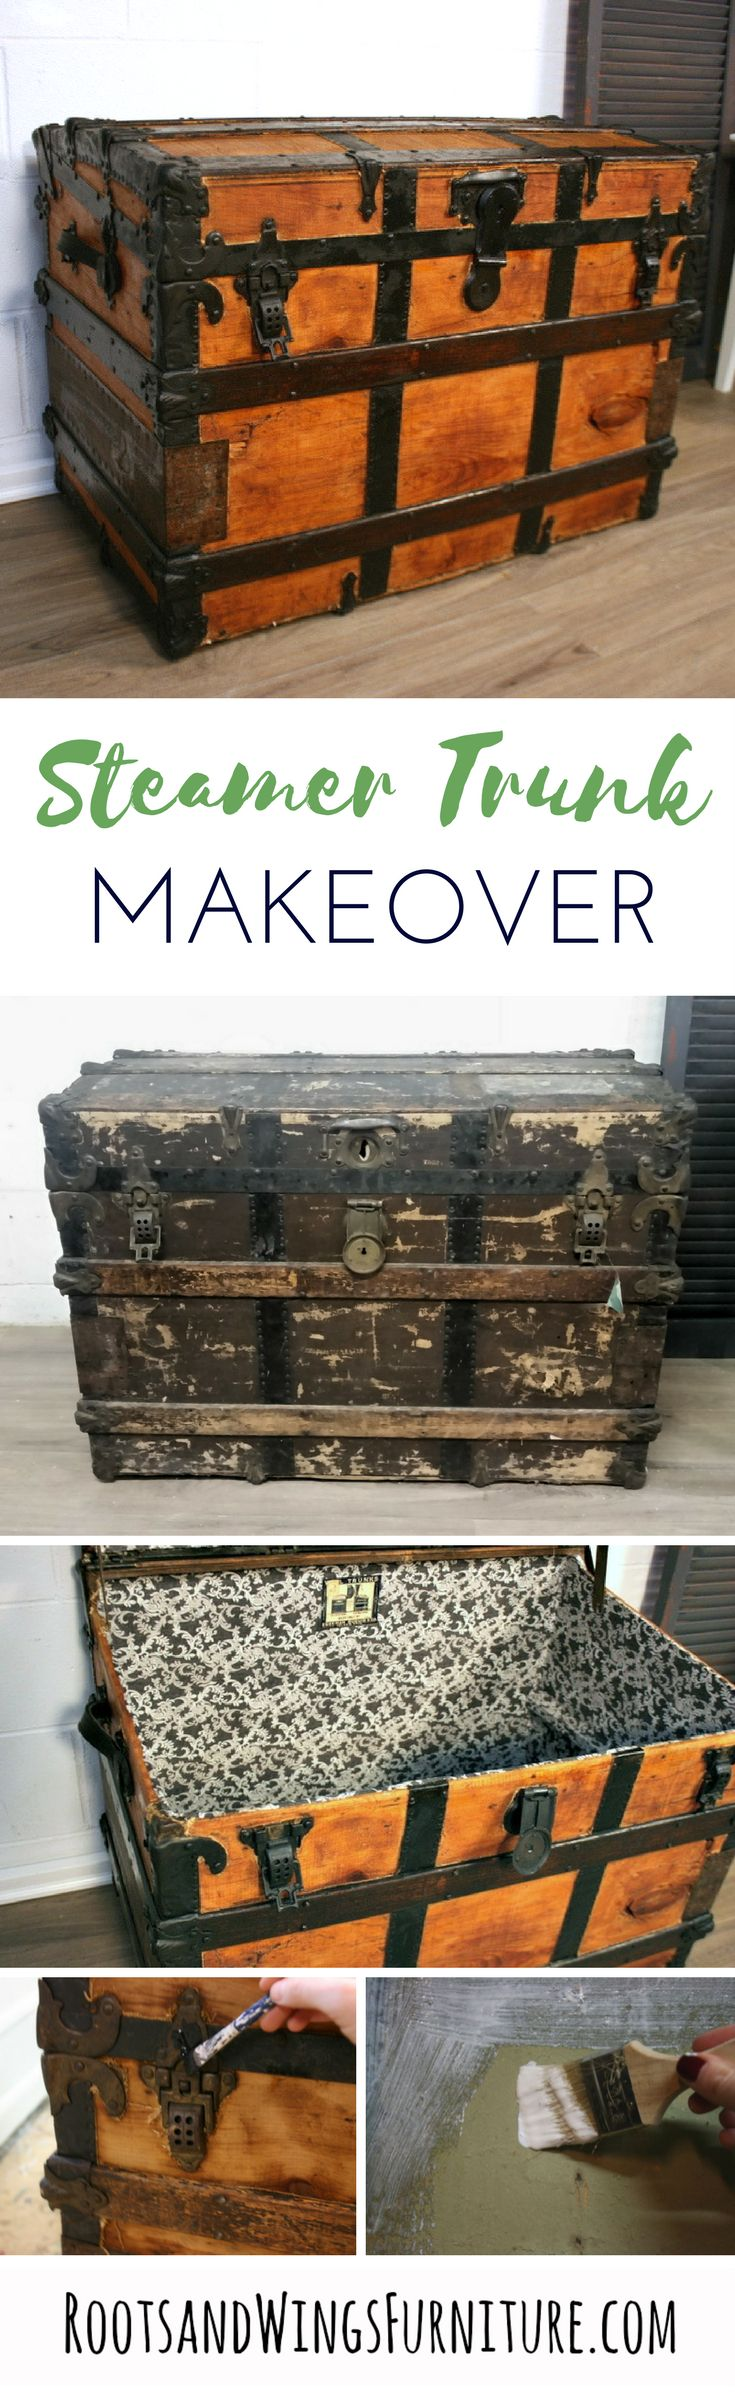 Completely makeover an old steamer trunk inside and out.  Step by step tutorial will show you how.  By Jenni of Roots and Wings Furniture.